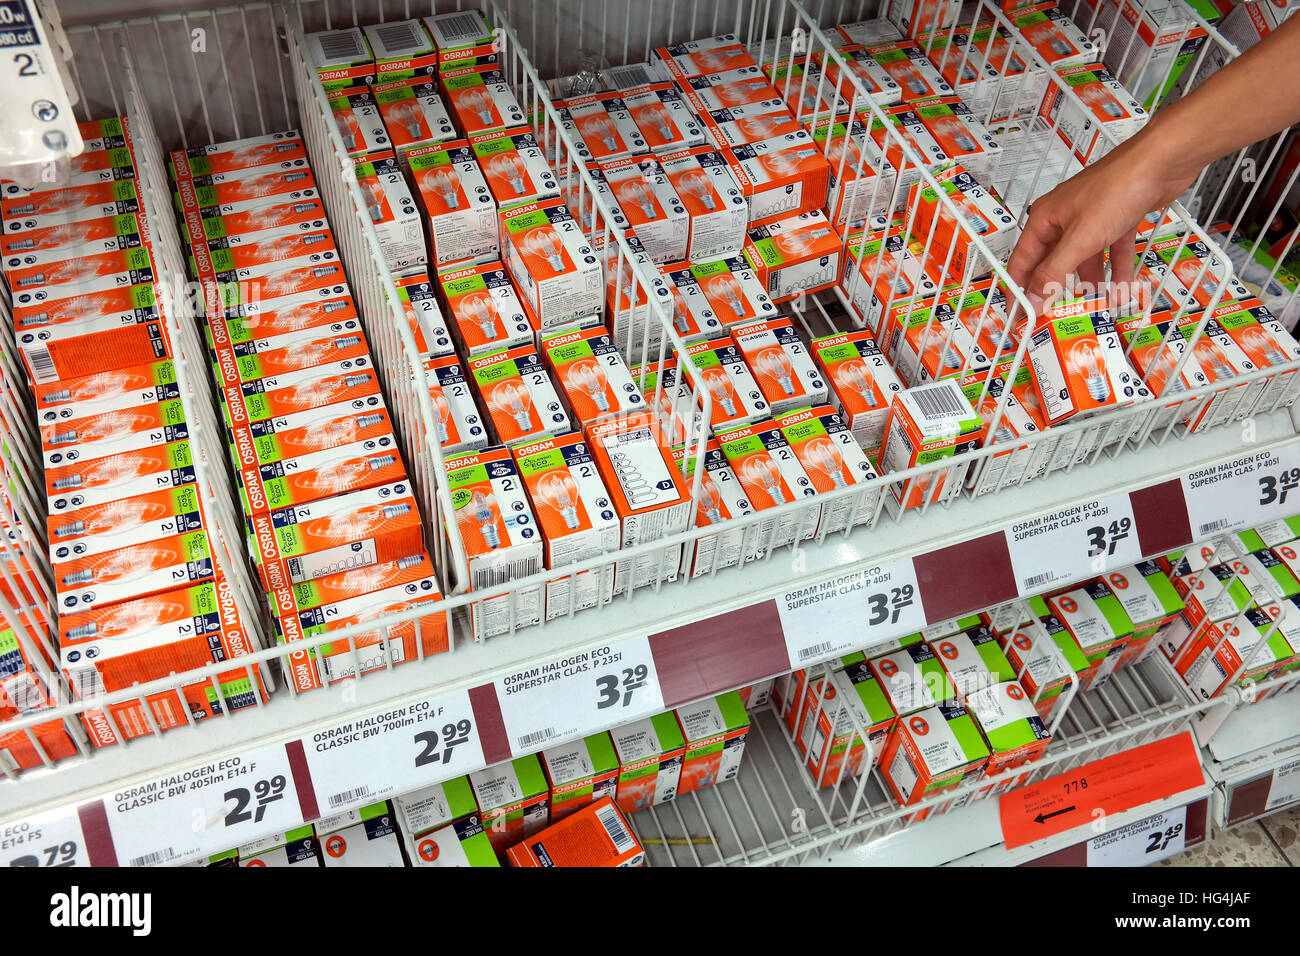 Shelves with Osram incandescent lamp packings. - Stock Image